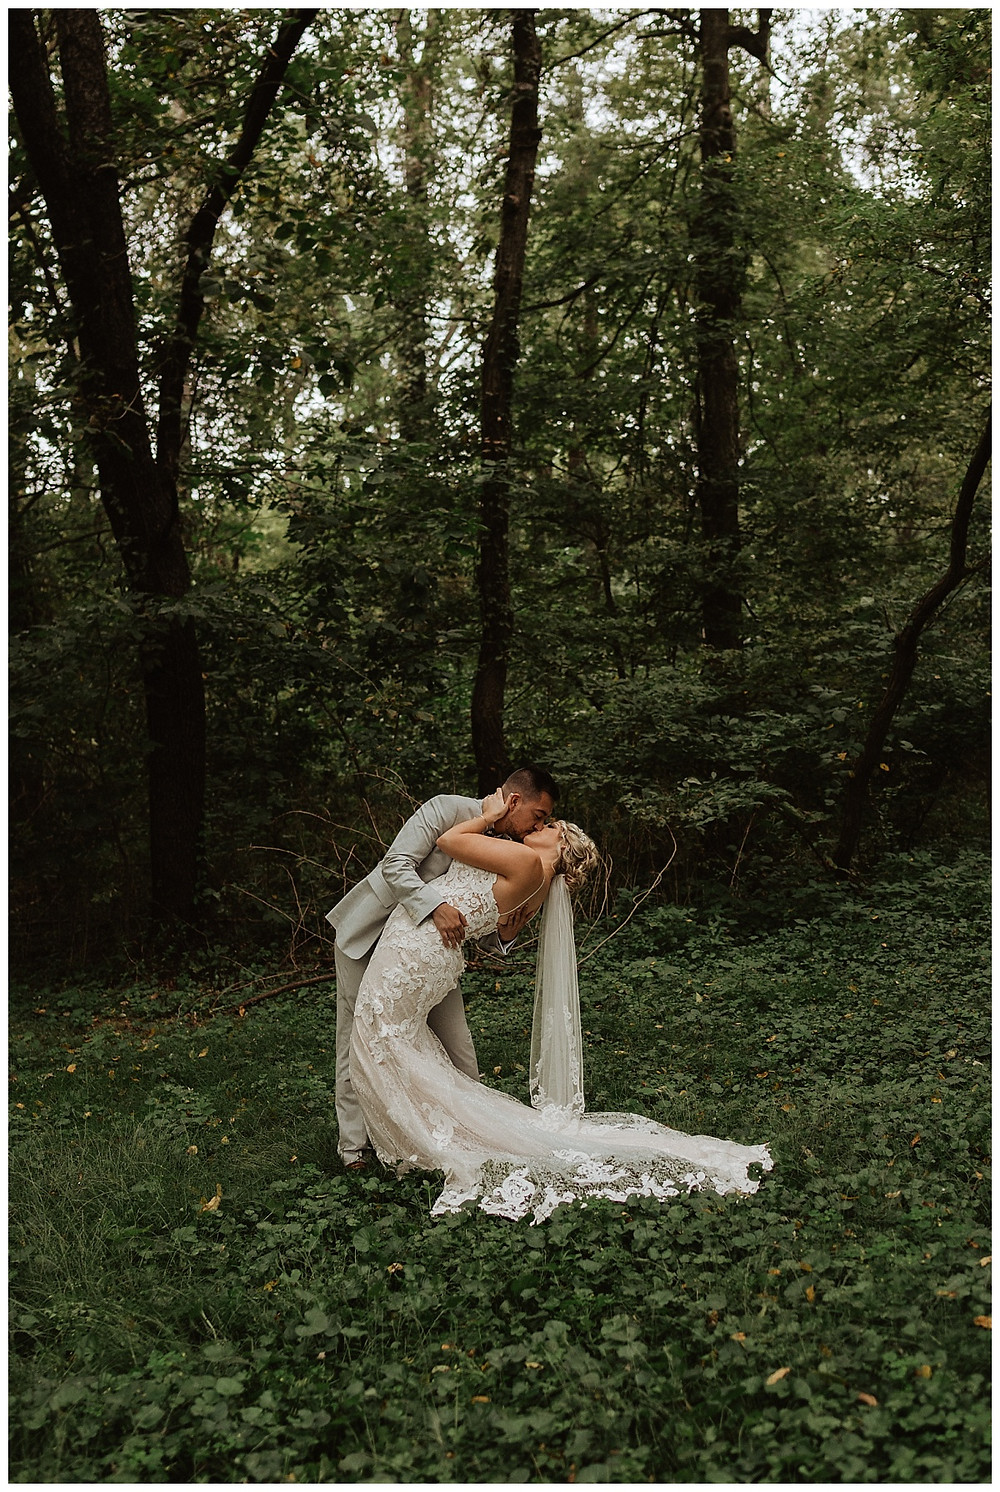 Wooded Bride & Groom Portraits